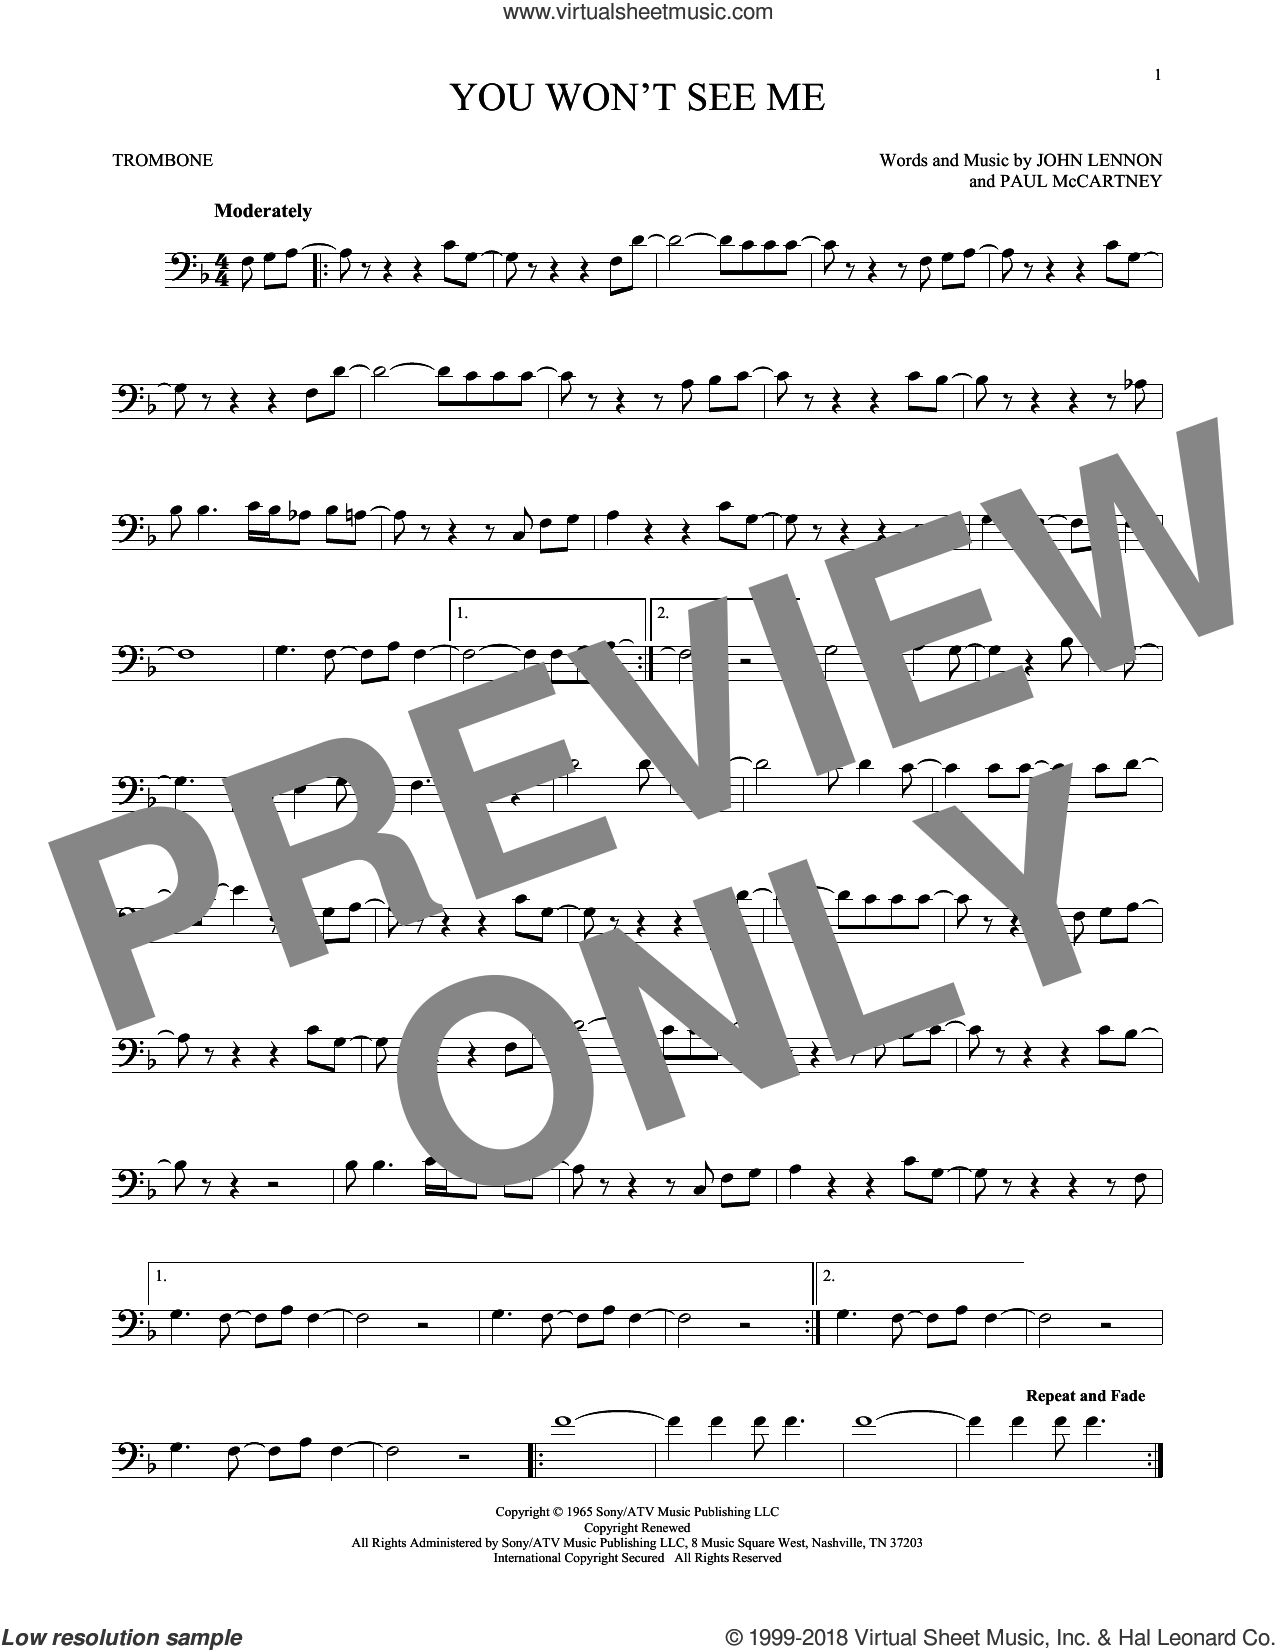 You Won't See Me sheet music for trombone solo by The Beatles, John Lennon and Paul McCartney, intermediate skill level